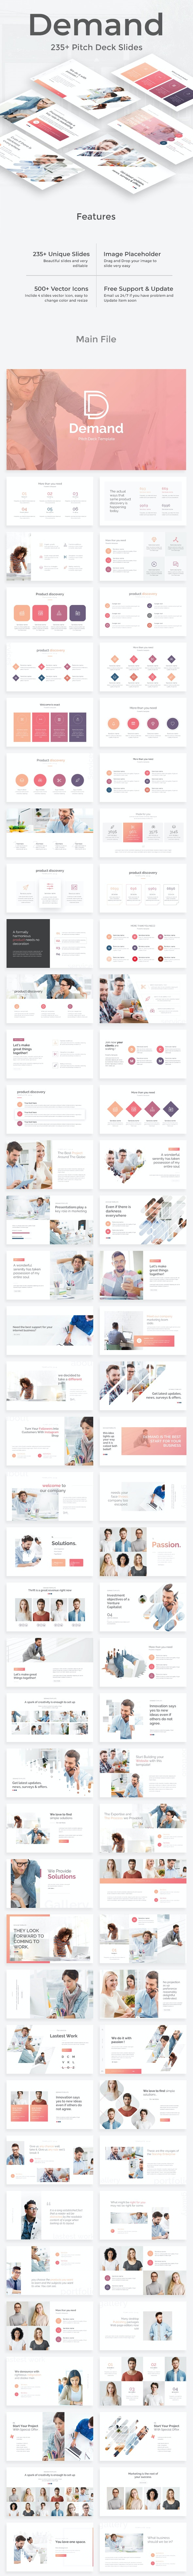 Demand Management Pitch Deck Keynote Template - Business Keynote Templates